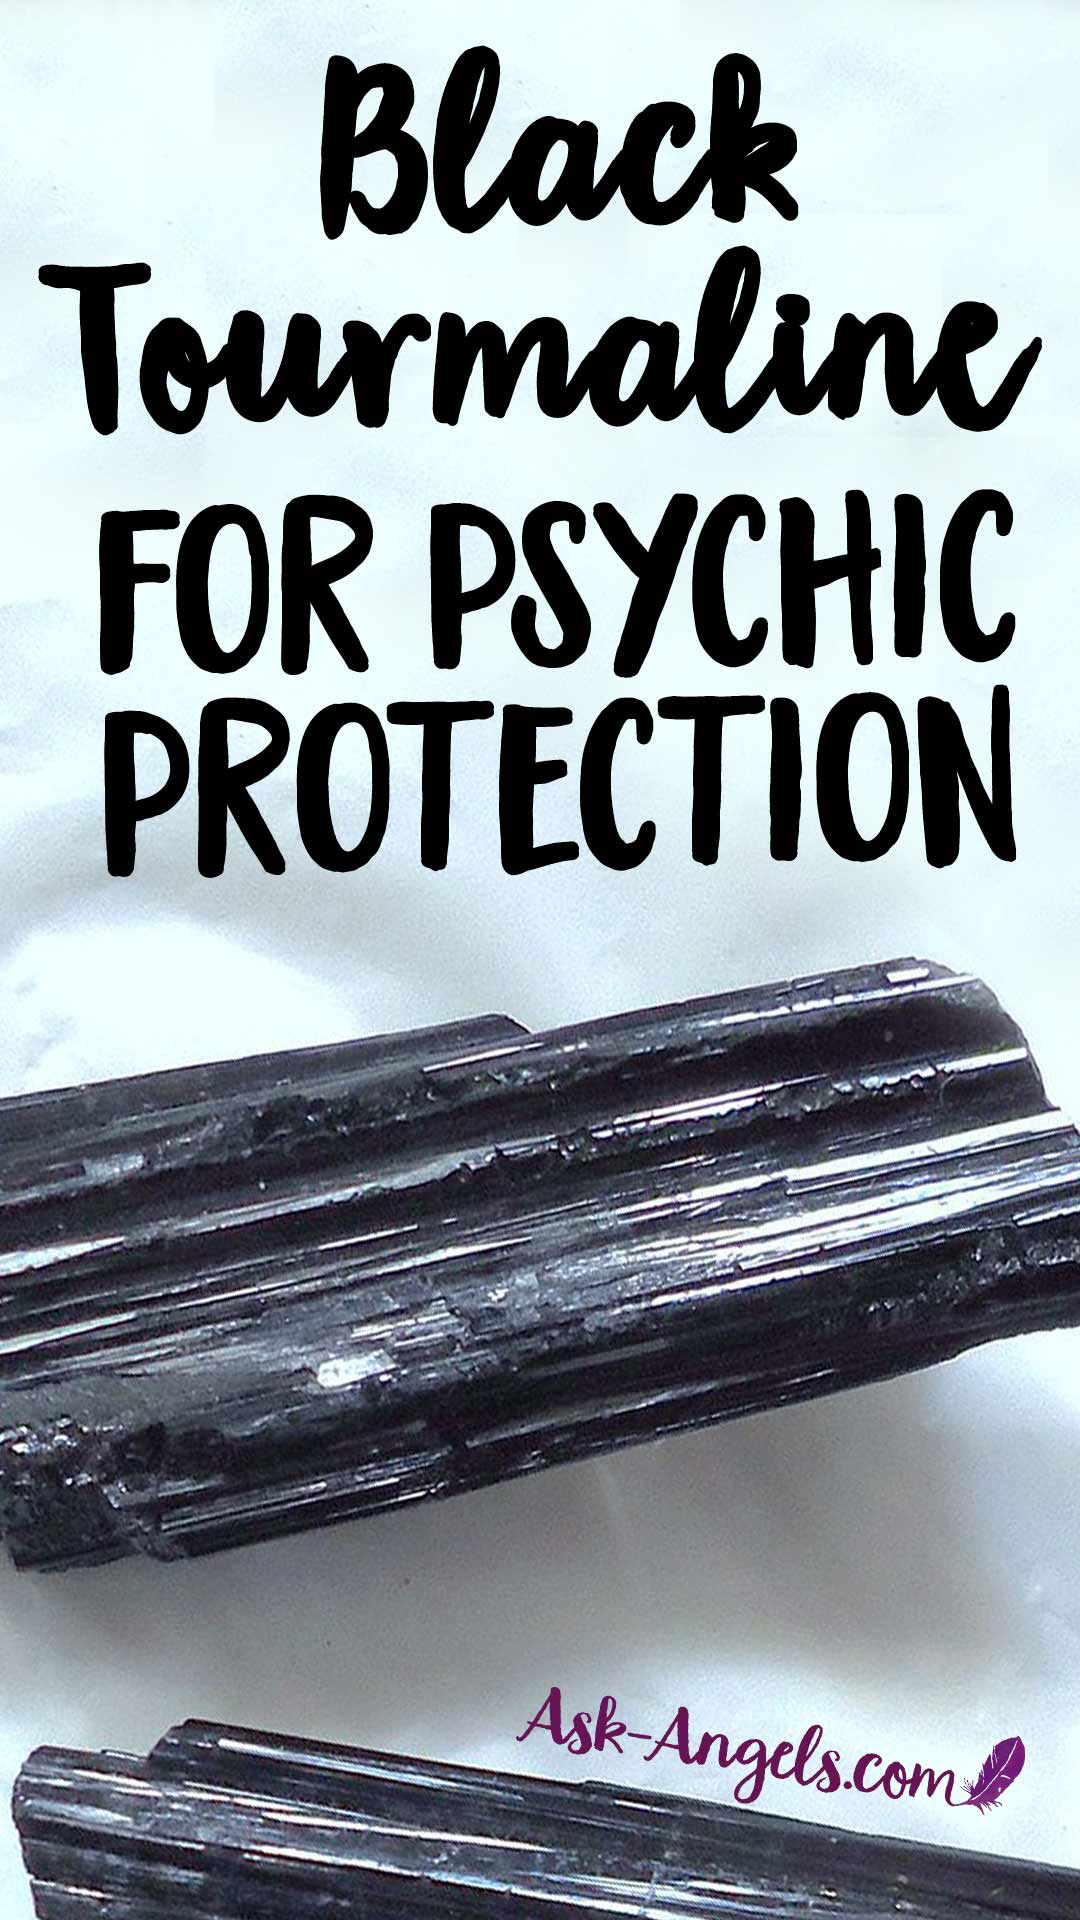 Learn how to use a Black Tourmaline crystal for powerful psychic protection.